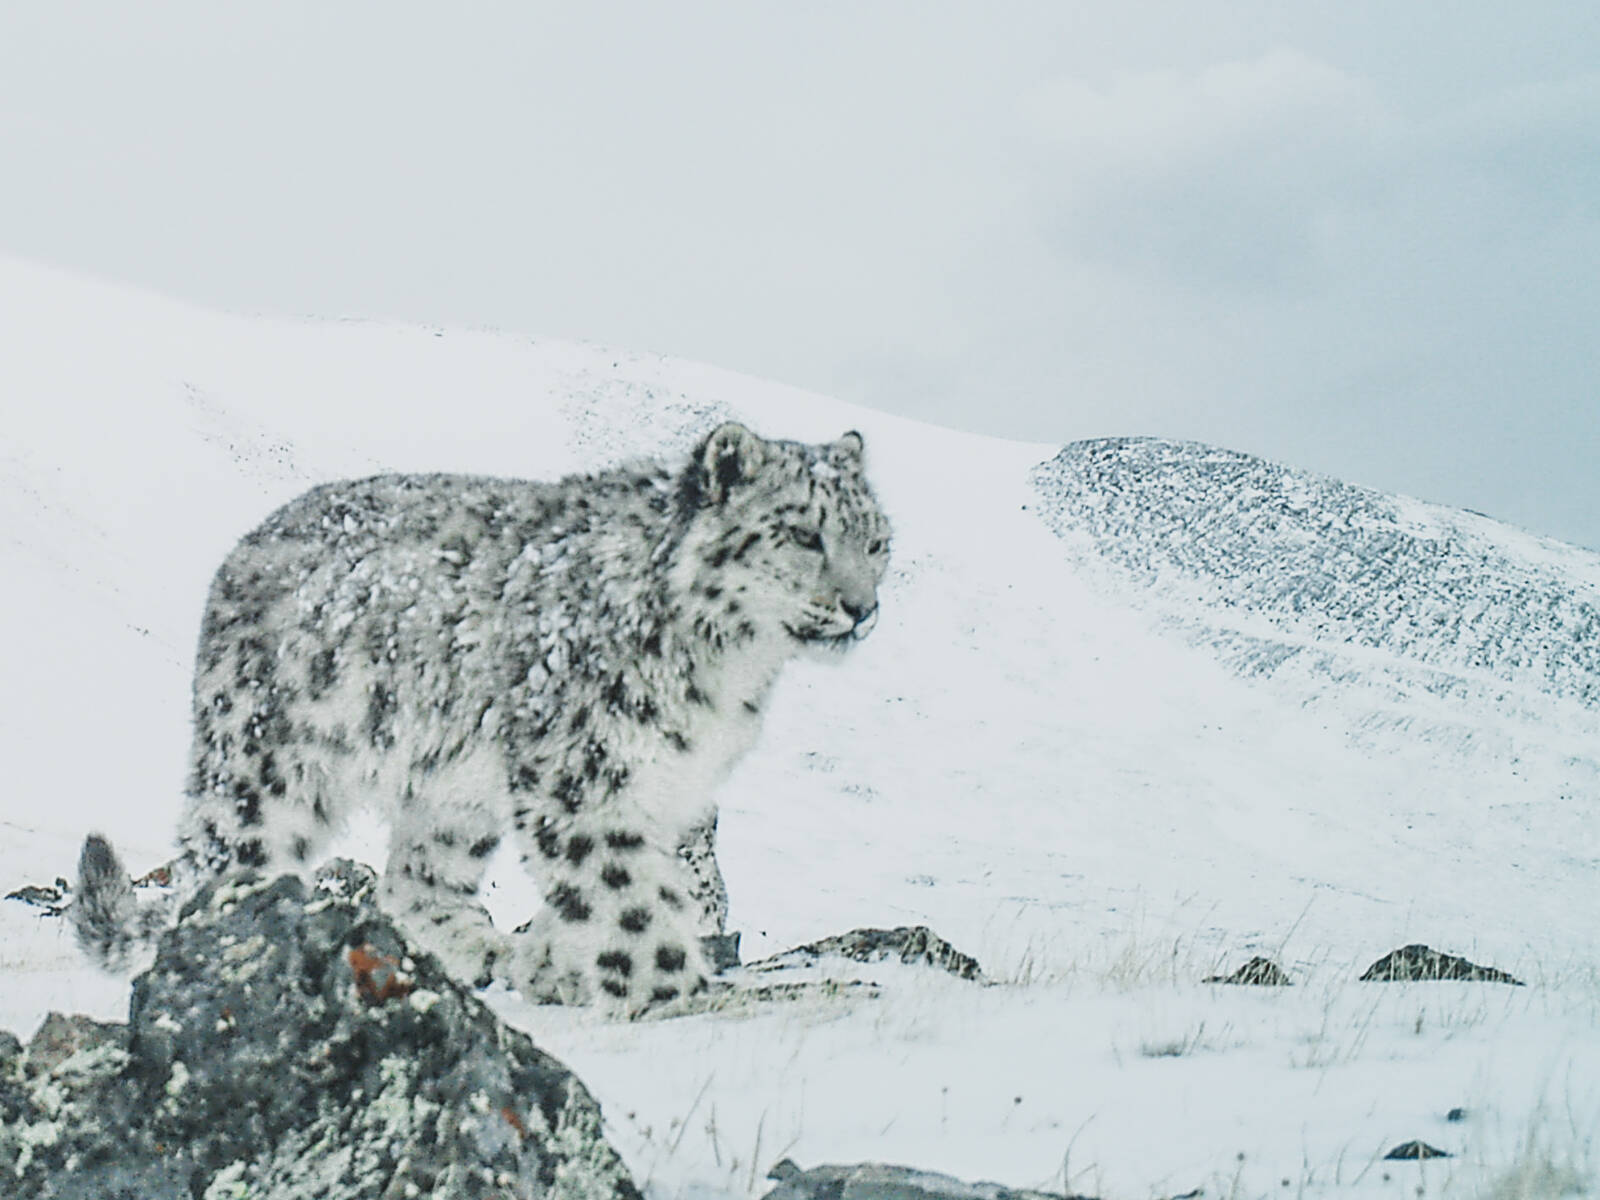 Looking for the Snow Leopard